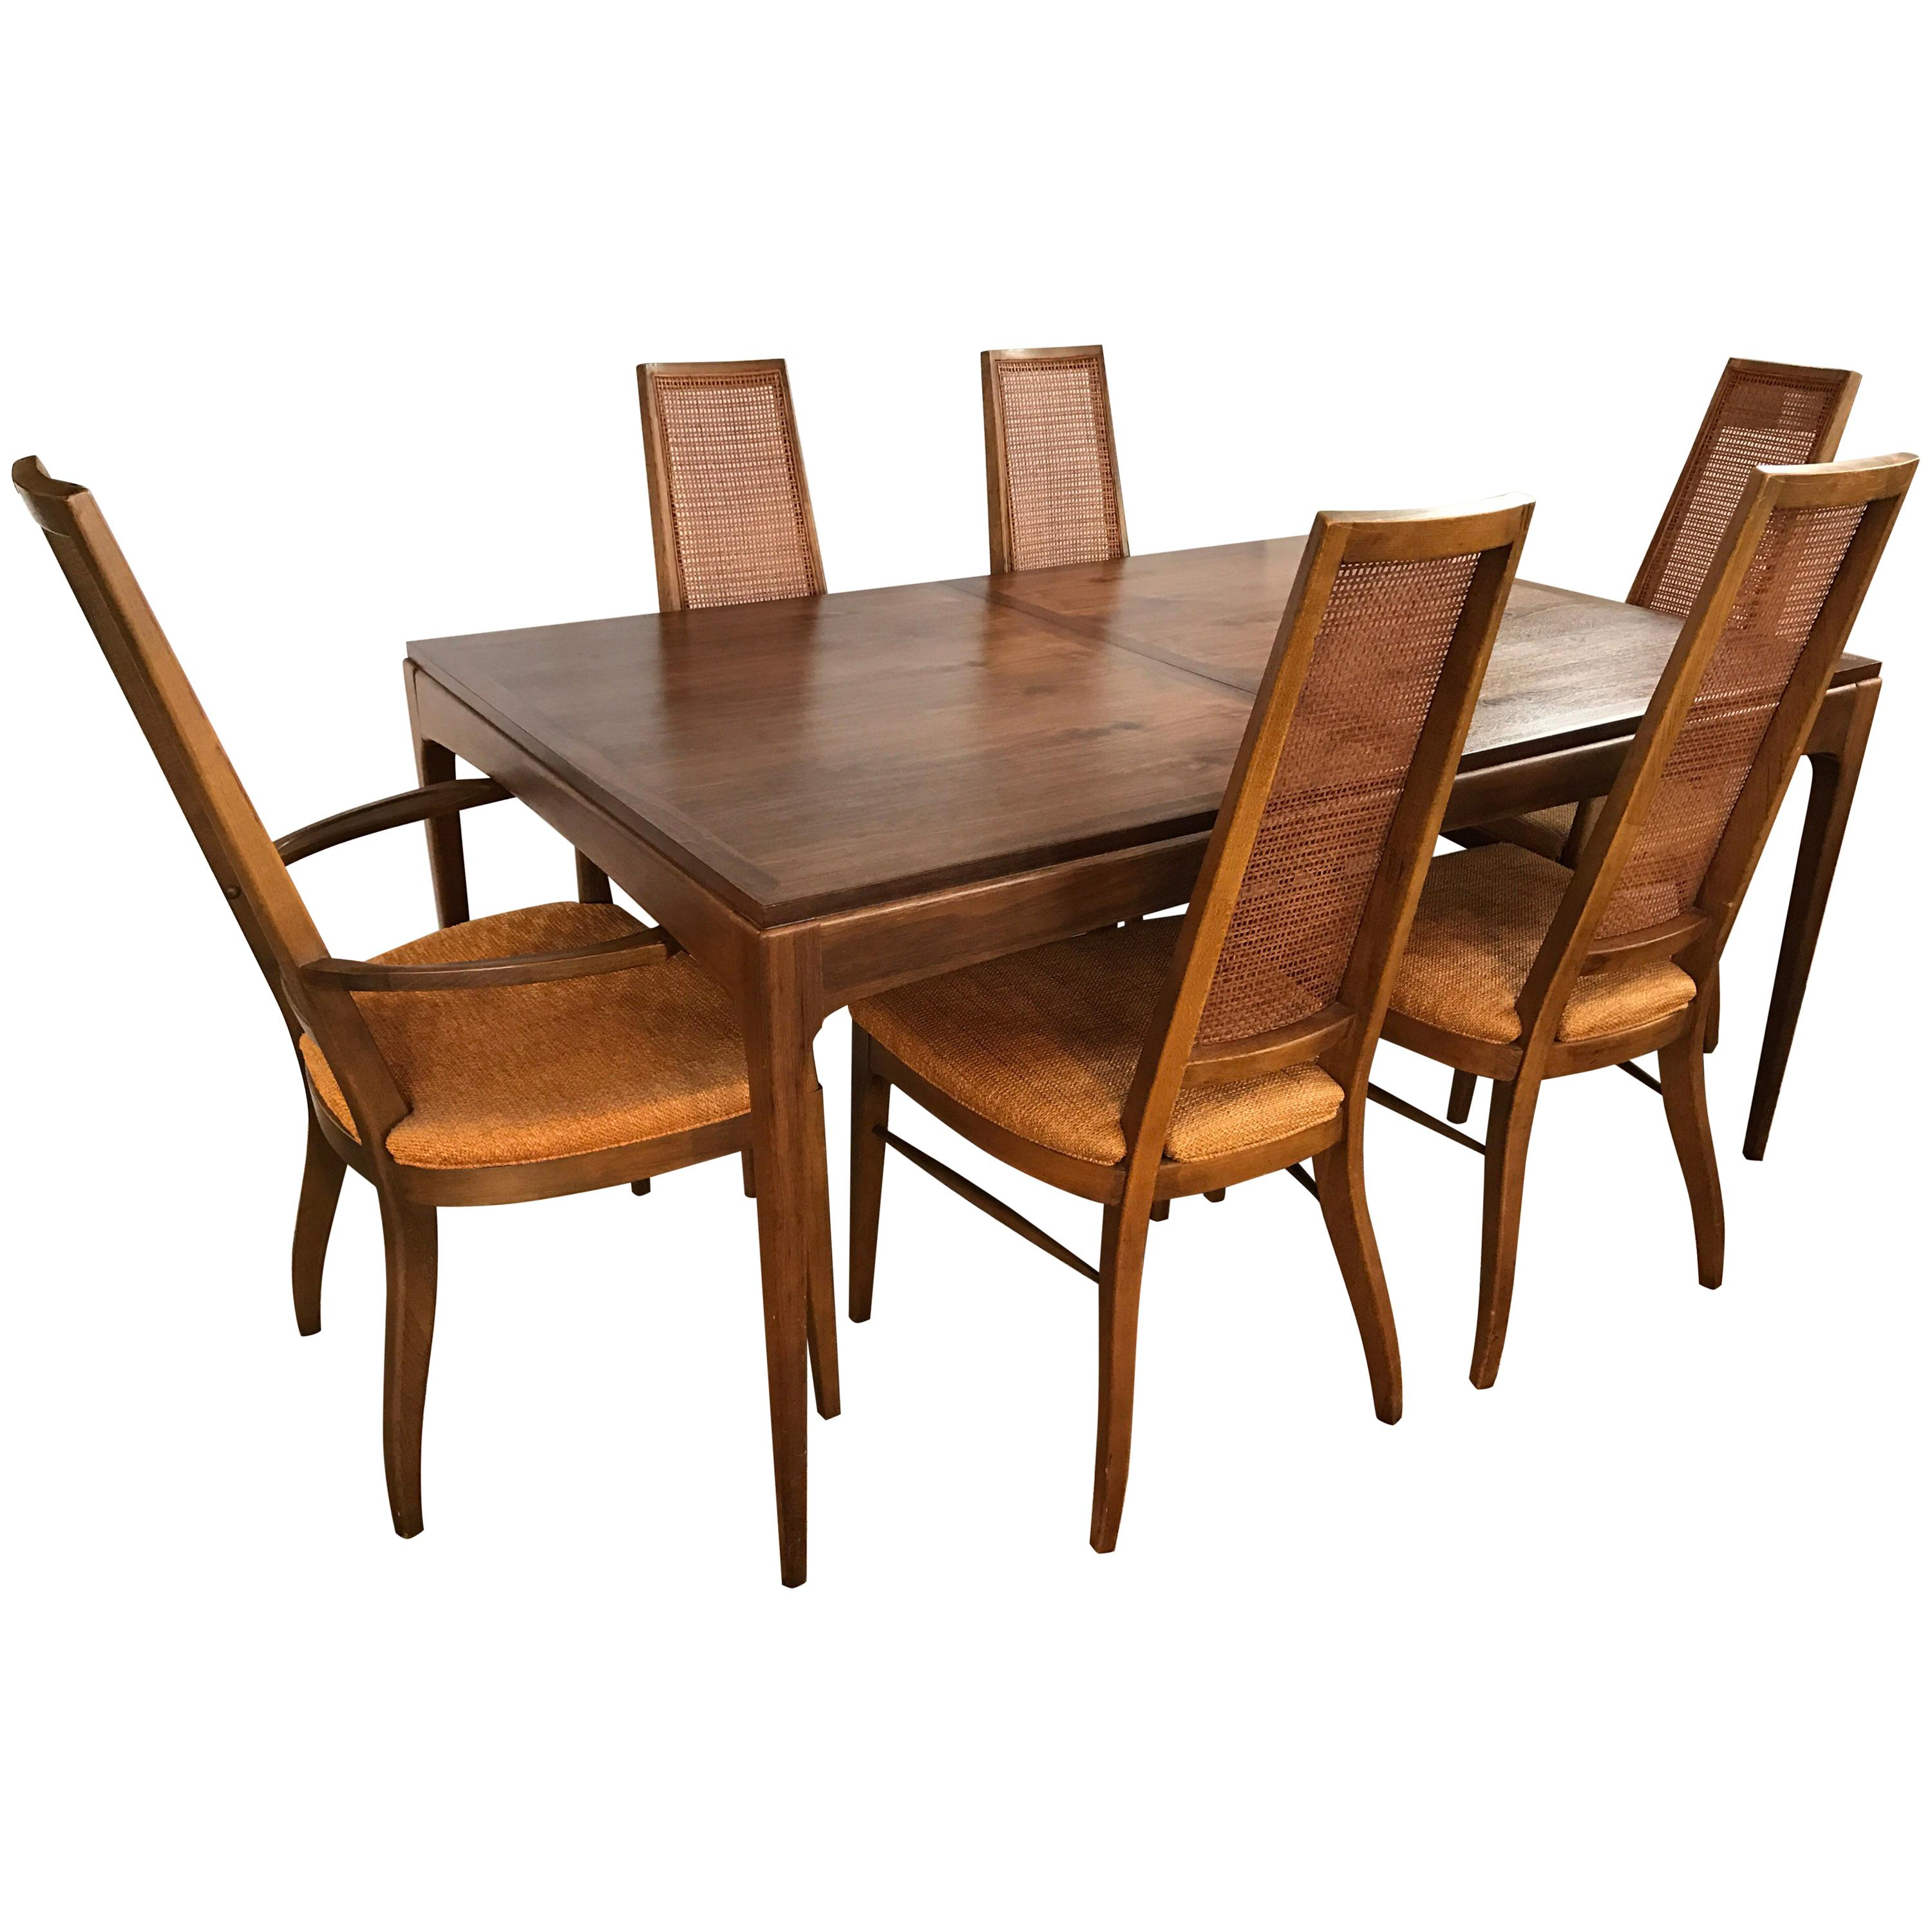 Beau Midcentury Lane Altavista Alta Vista Dining Set Table And Six Matching  Chairs For Sale